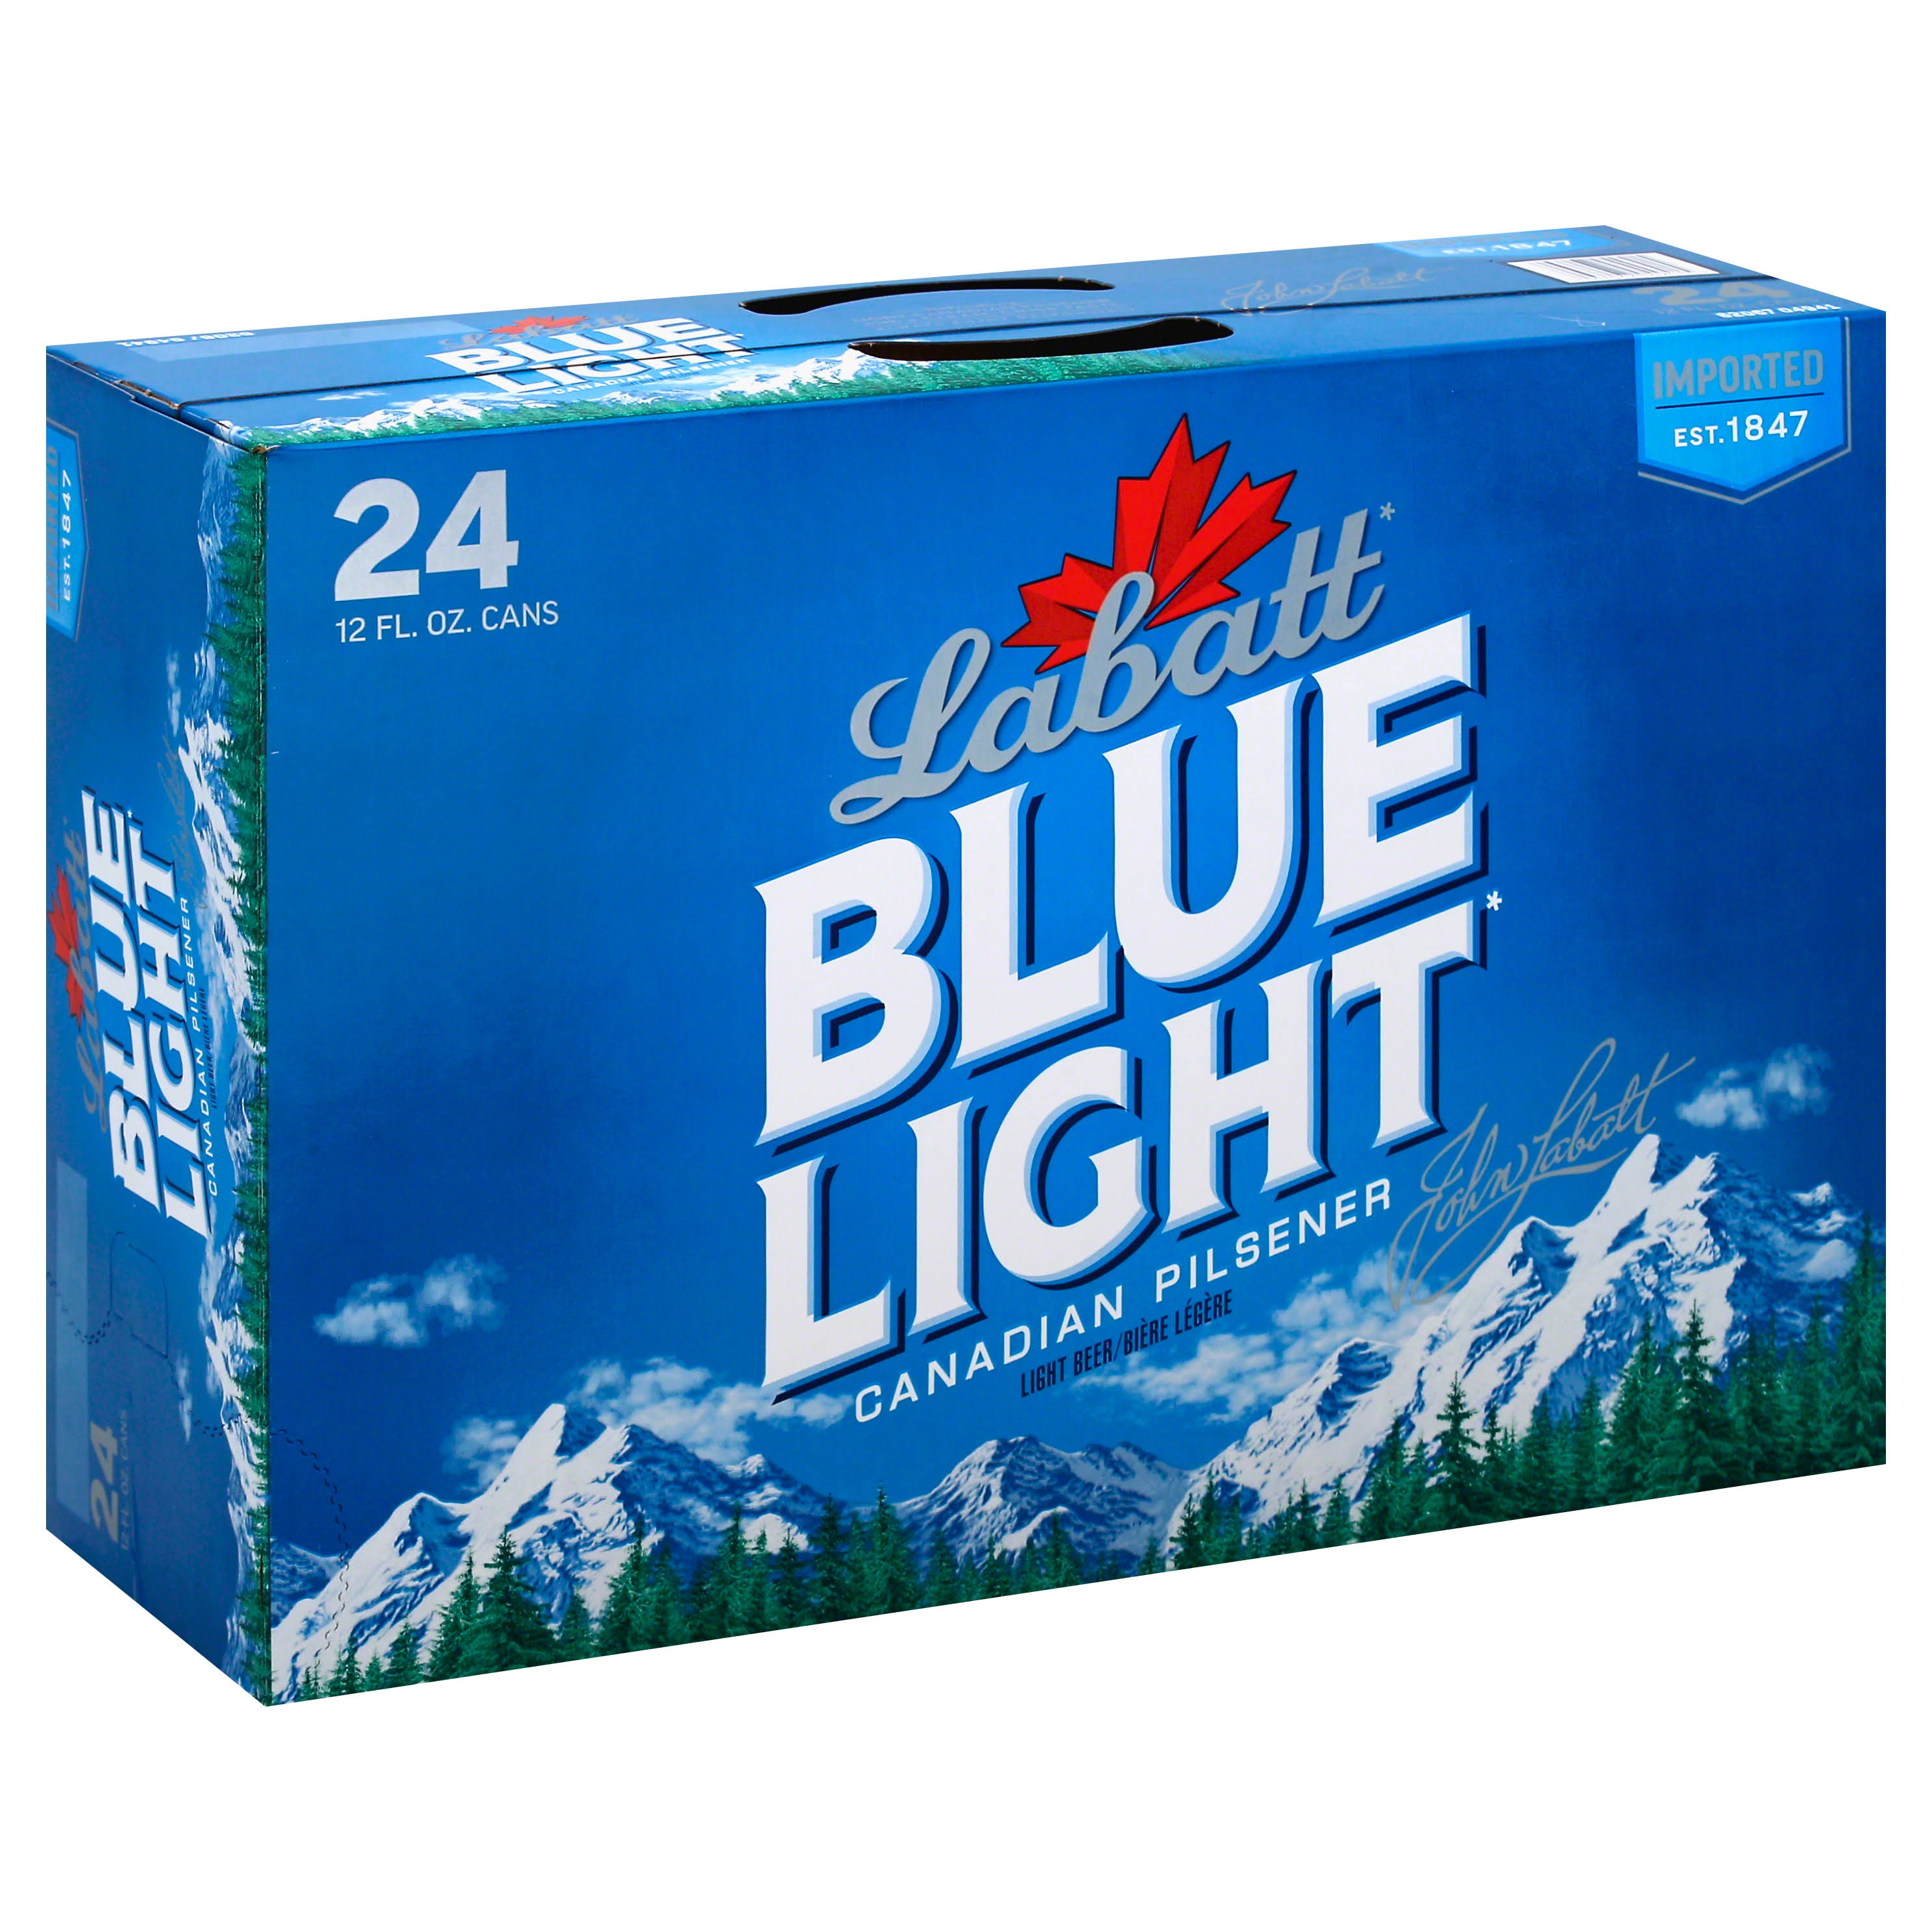 Labatt Blue Light Beer Cans